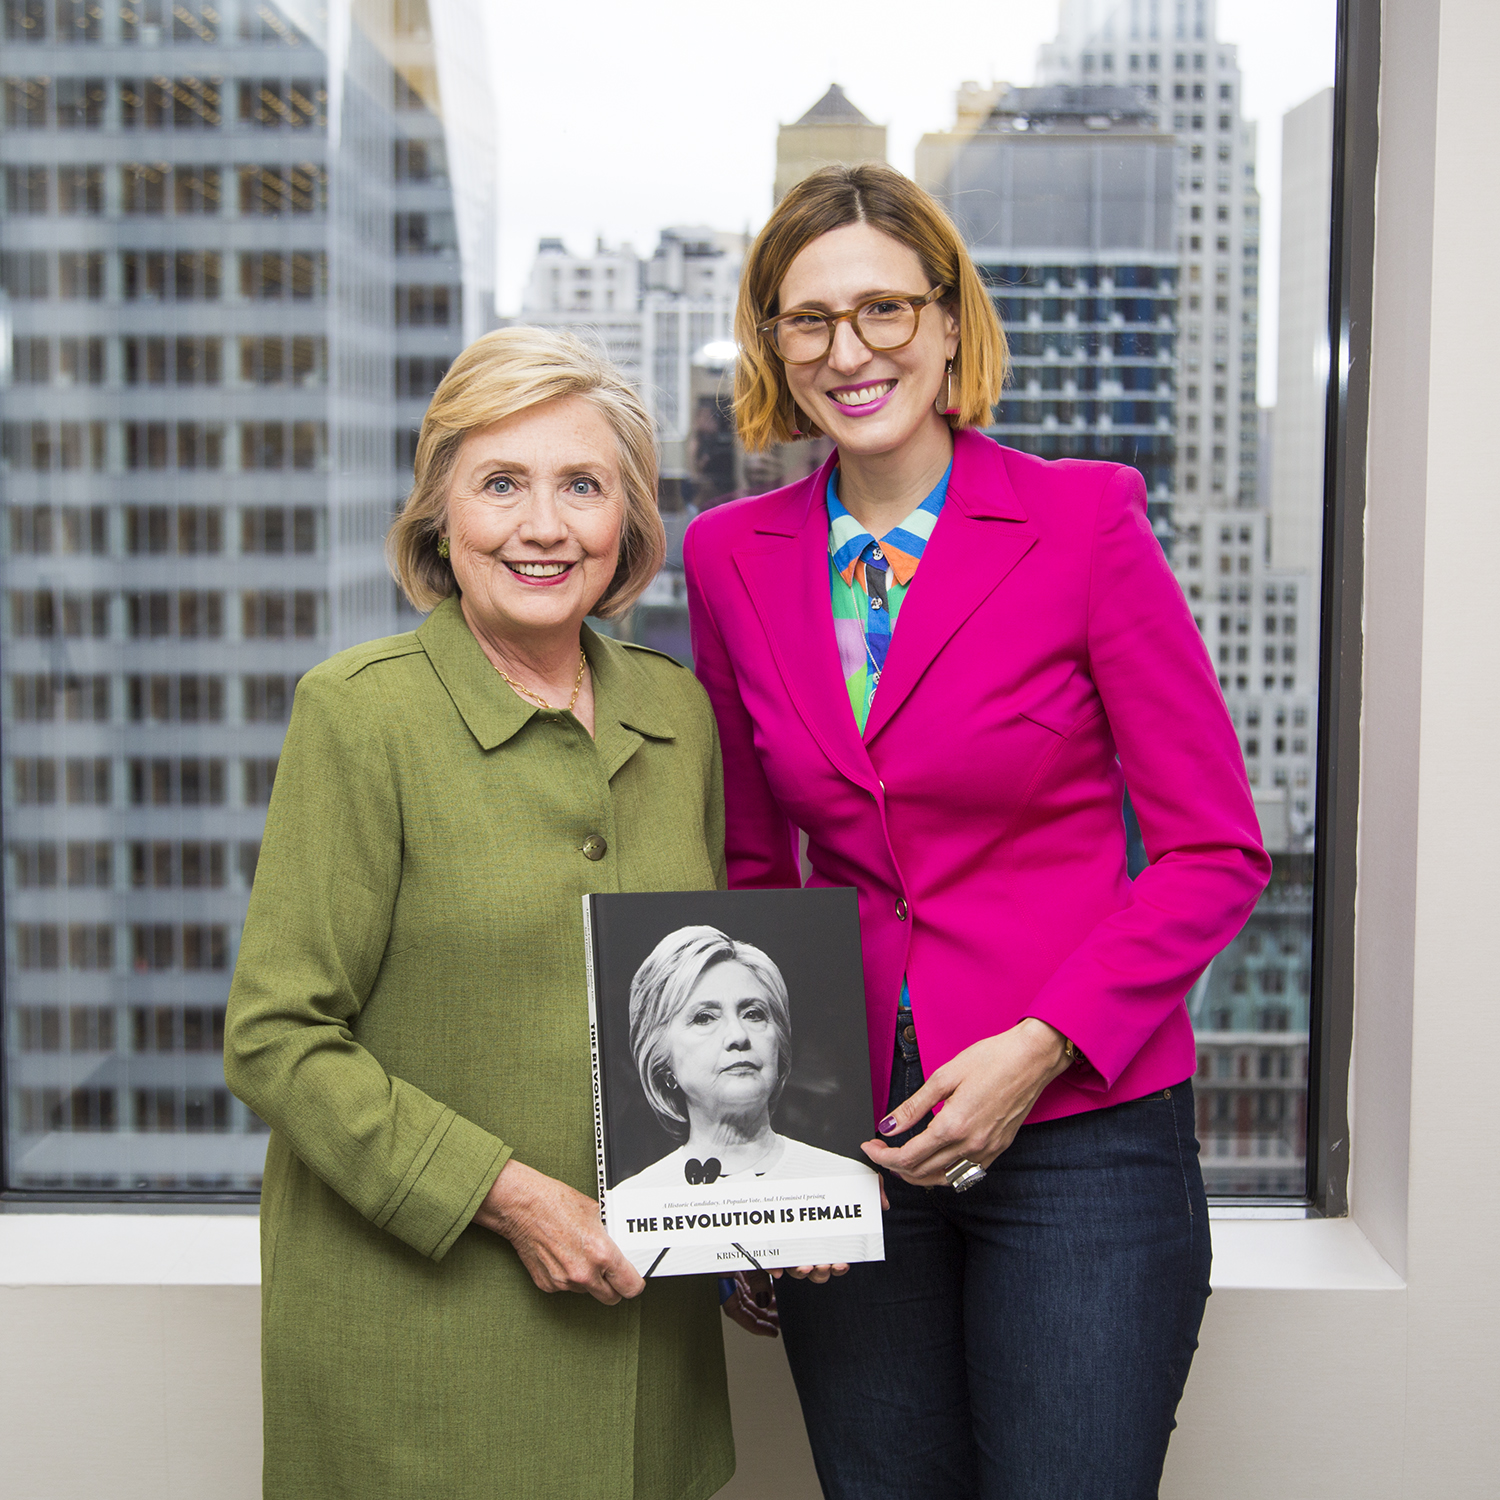 Hillary Rodham Clinton and photographer Kristen Blush pose with a copy of The Revolution Is Female. Photo by Nick Merrill, 2018.